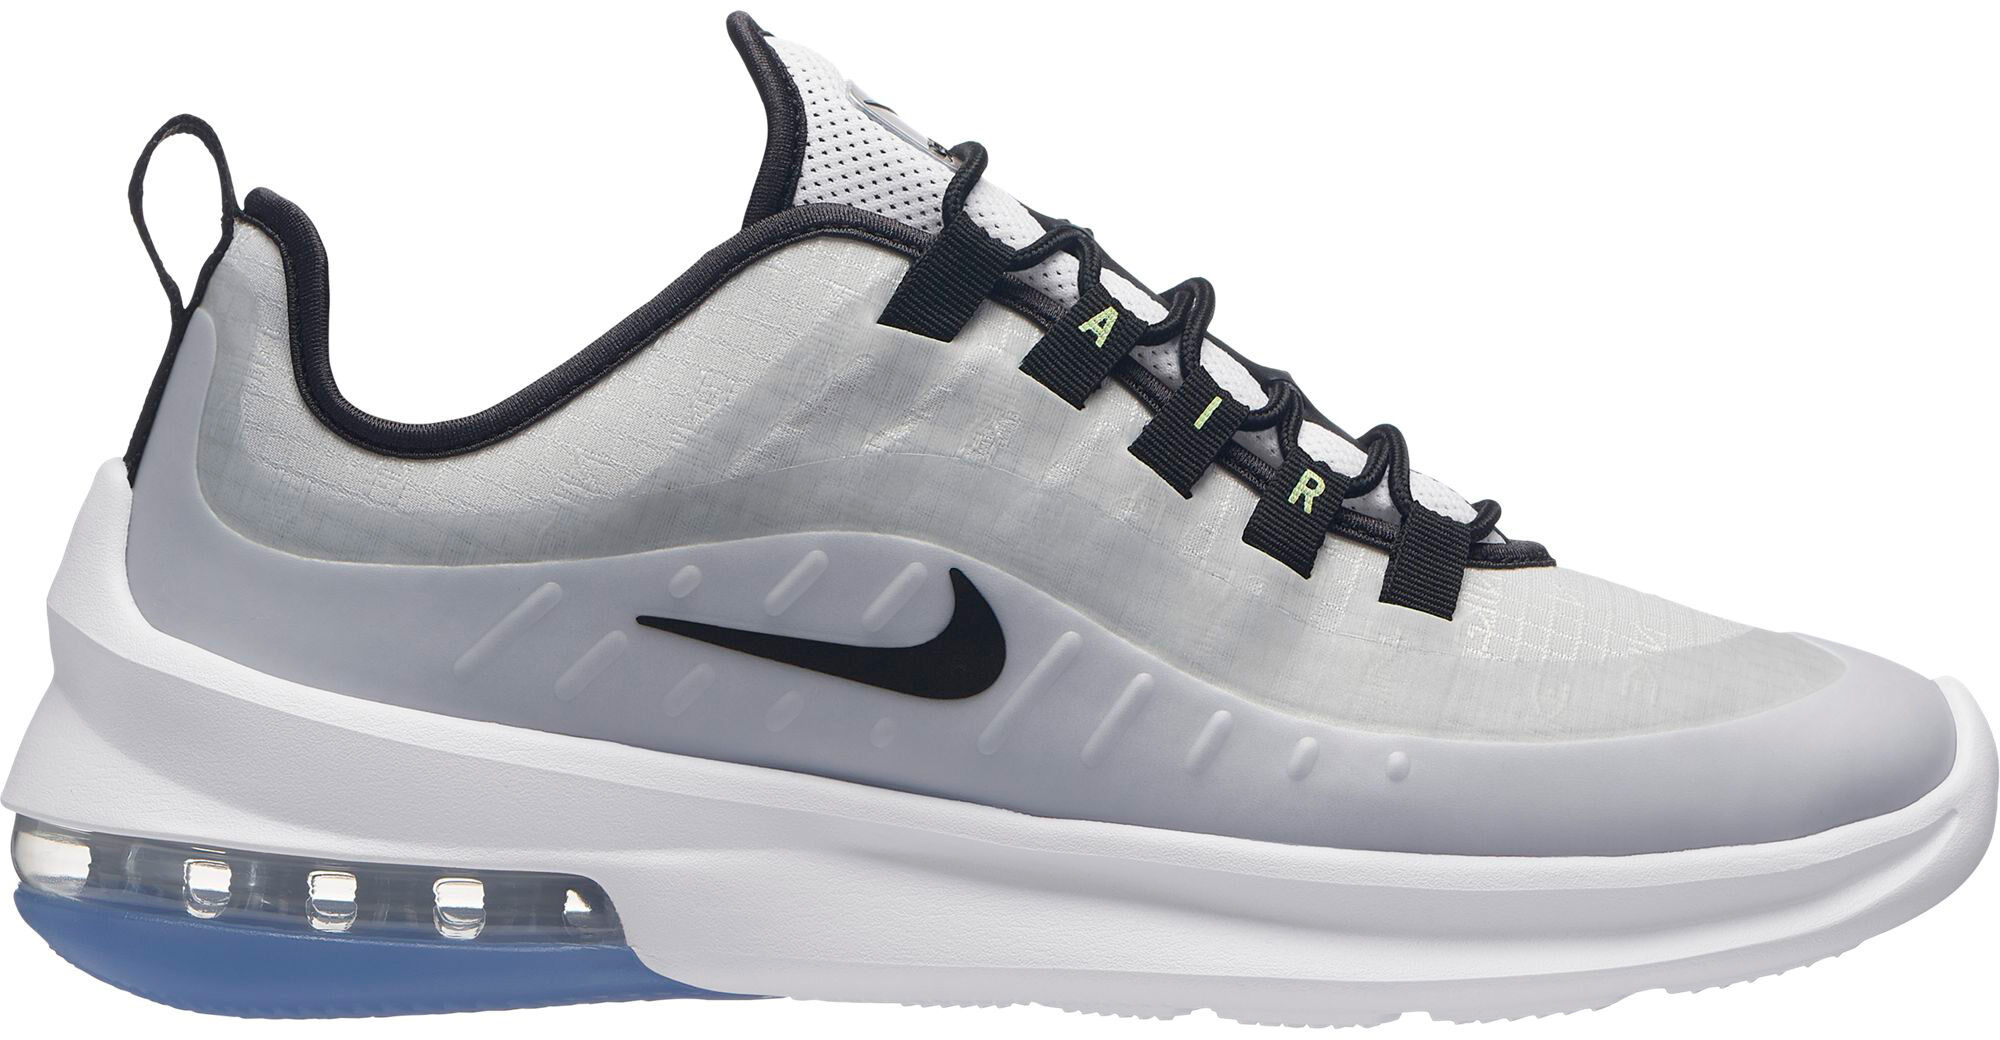 Outlet de sneakers Nike Air Max Axis Intersport hombre